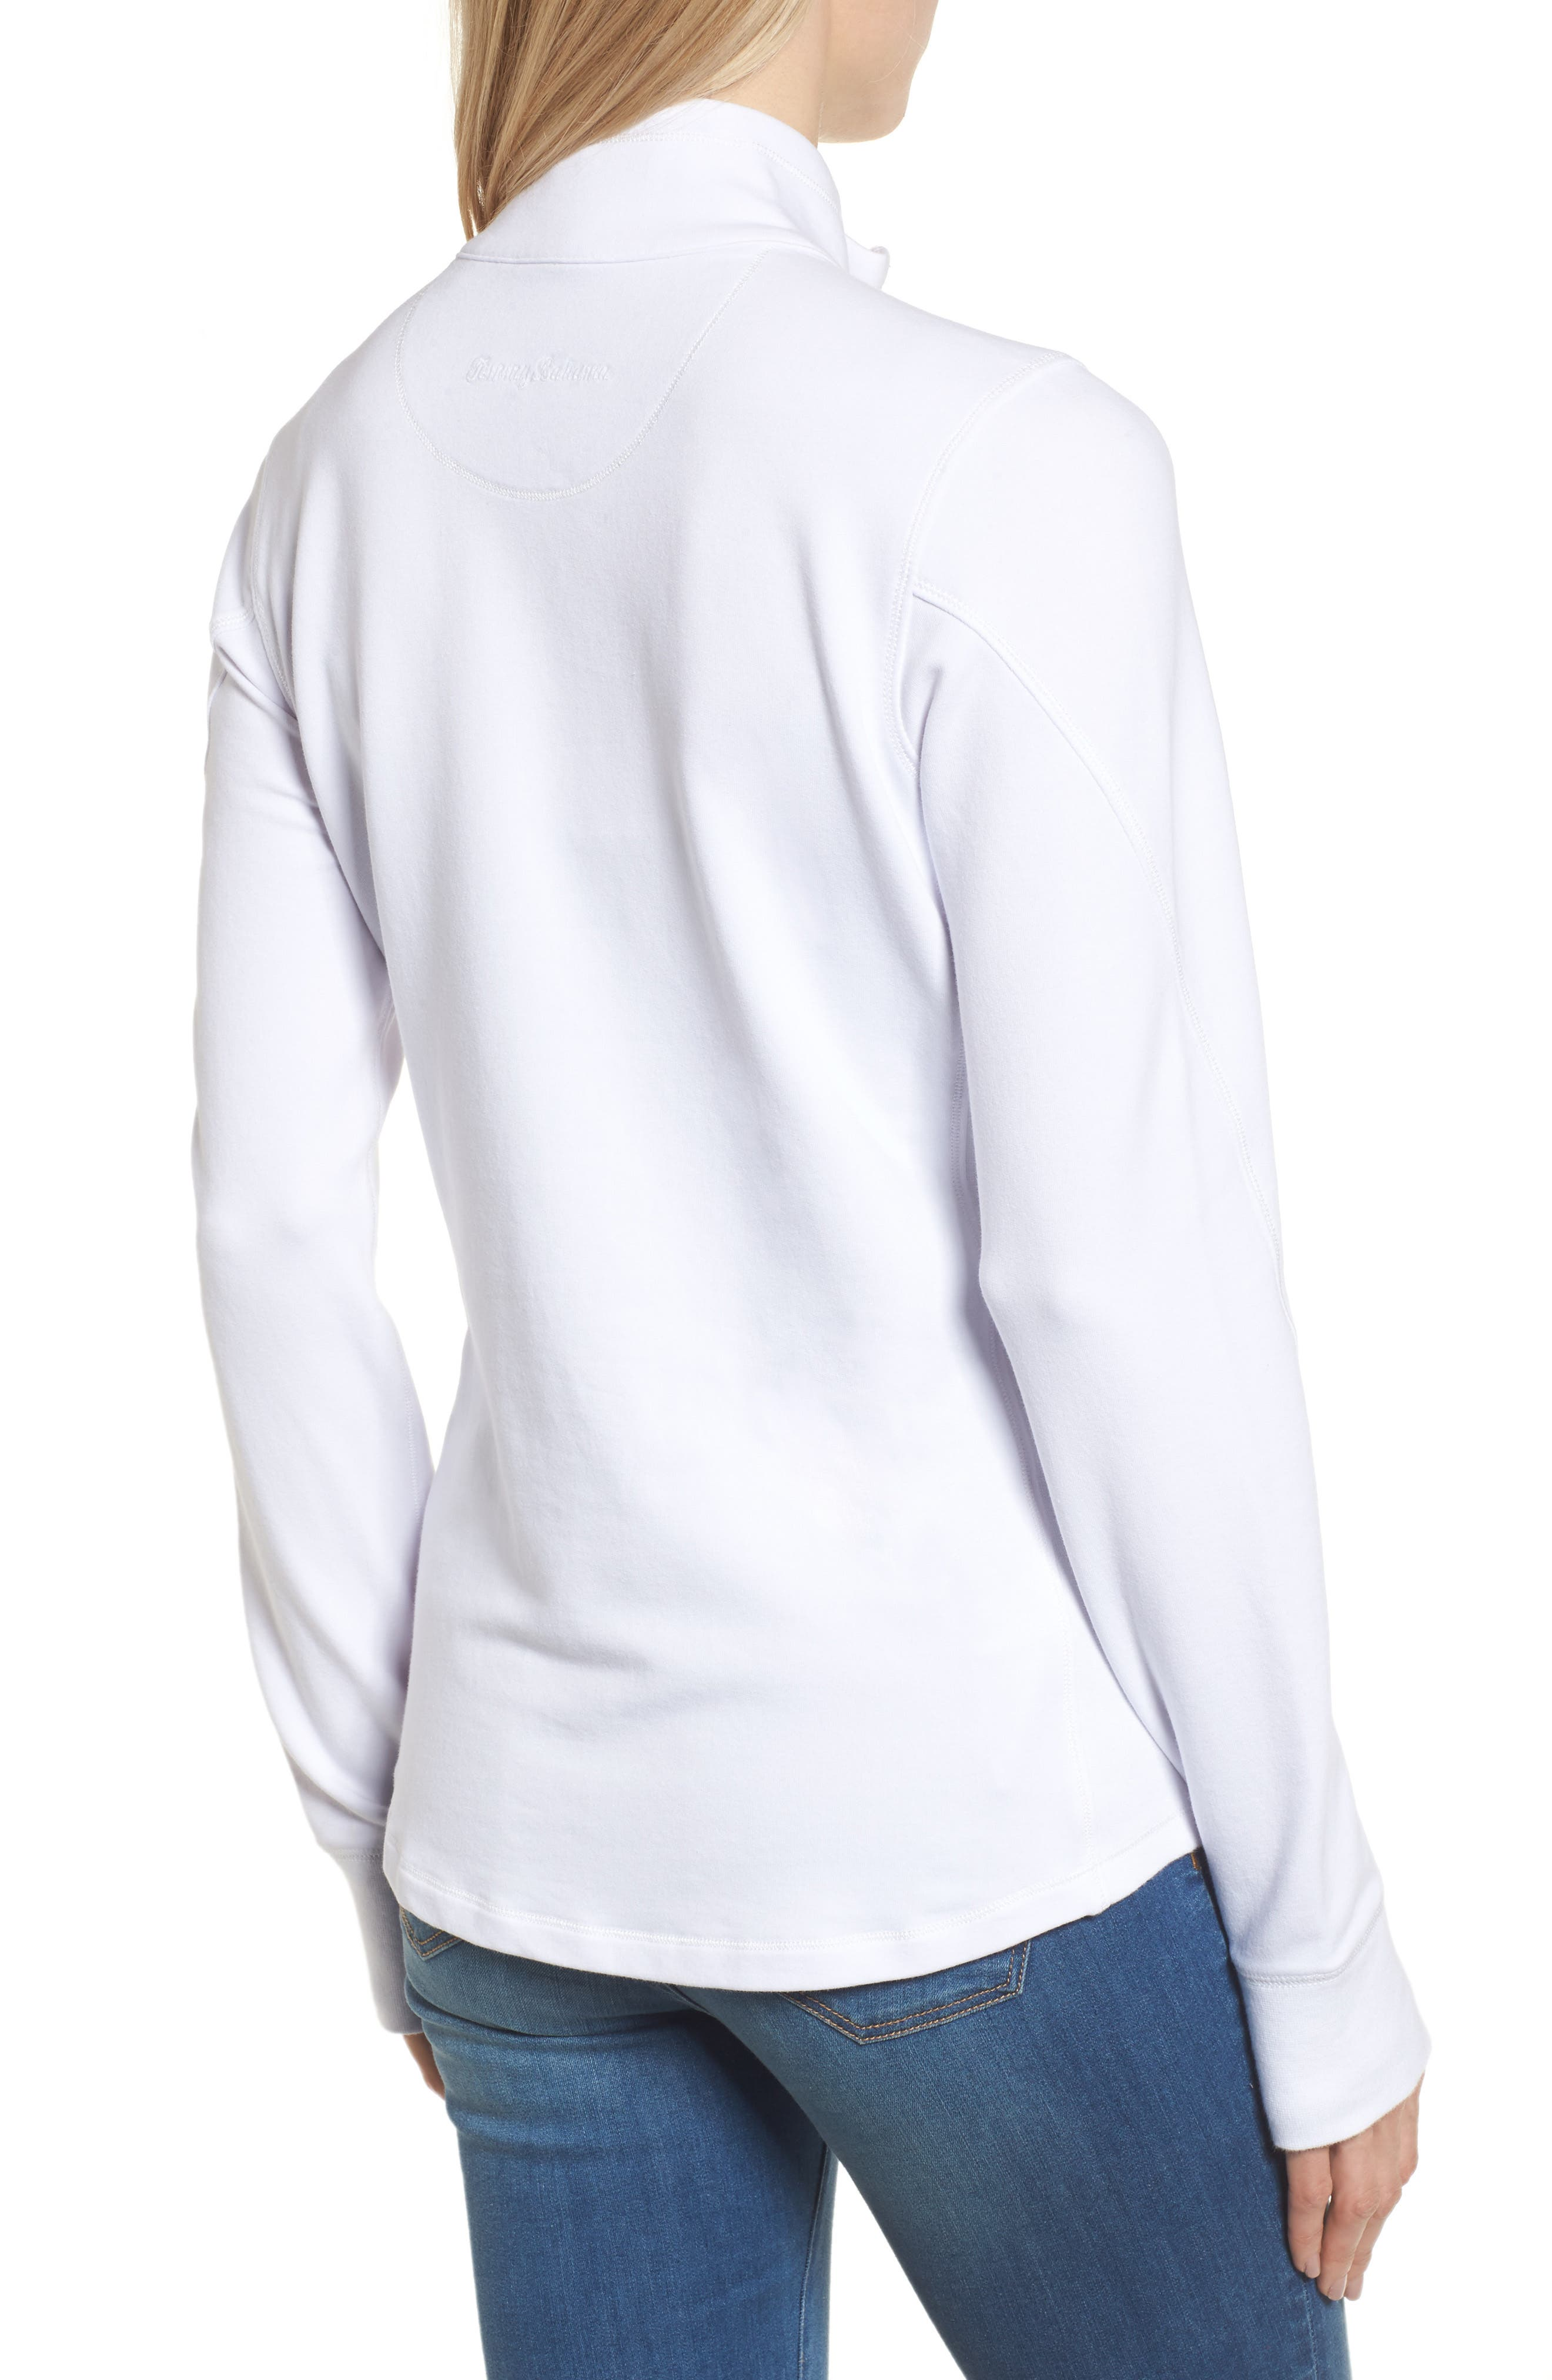 Jen and Terry Half Zip Top,                             Alternate thumbnail 2, color,                             WHITE